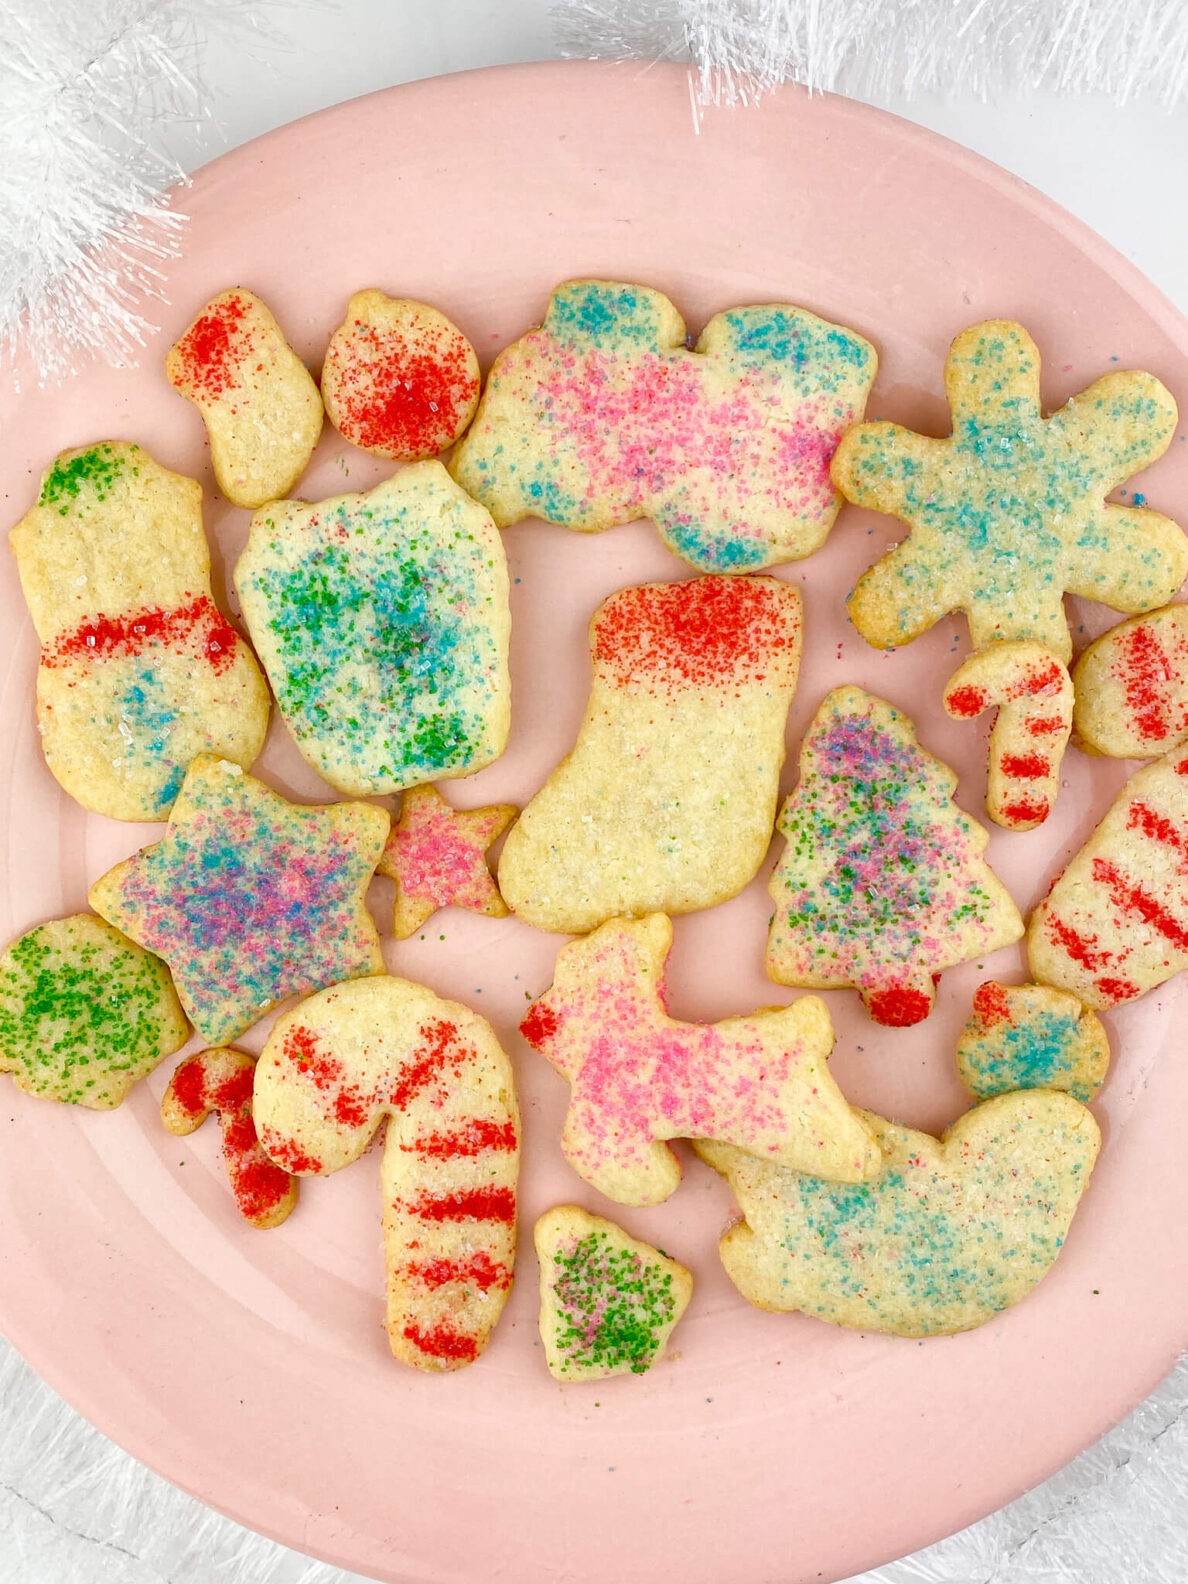 Kate's Safe and Sweet - Rolled Sugar Cookies on Plate